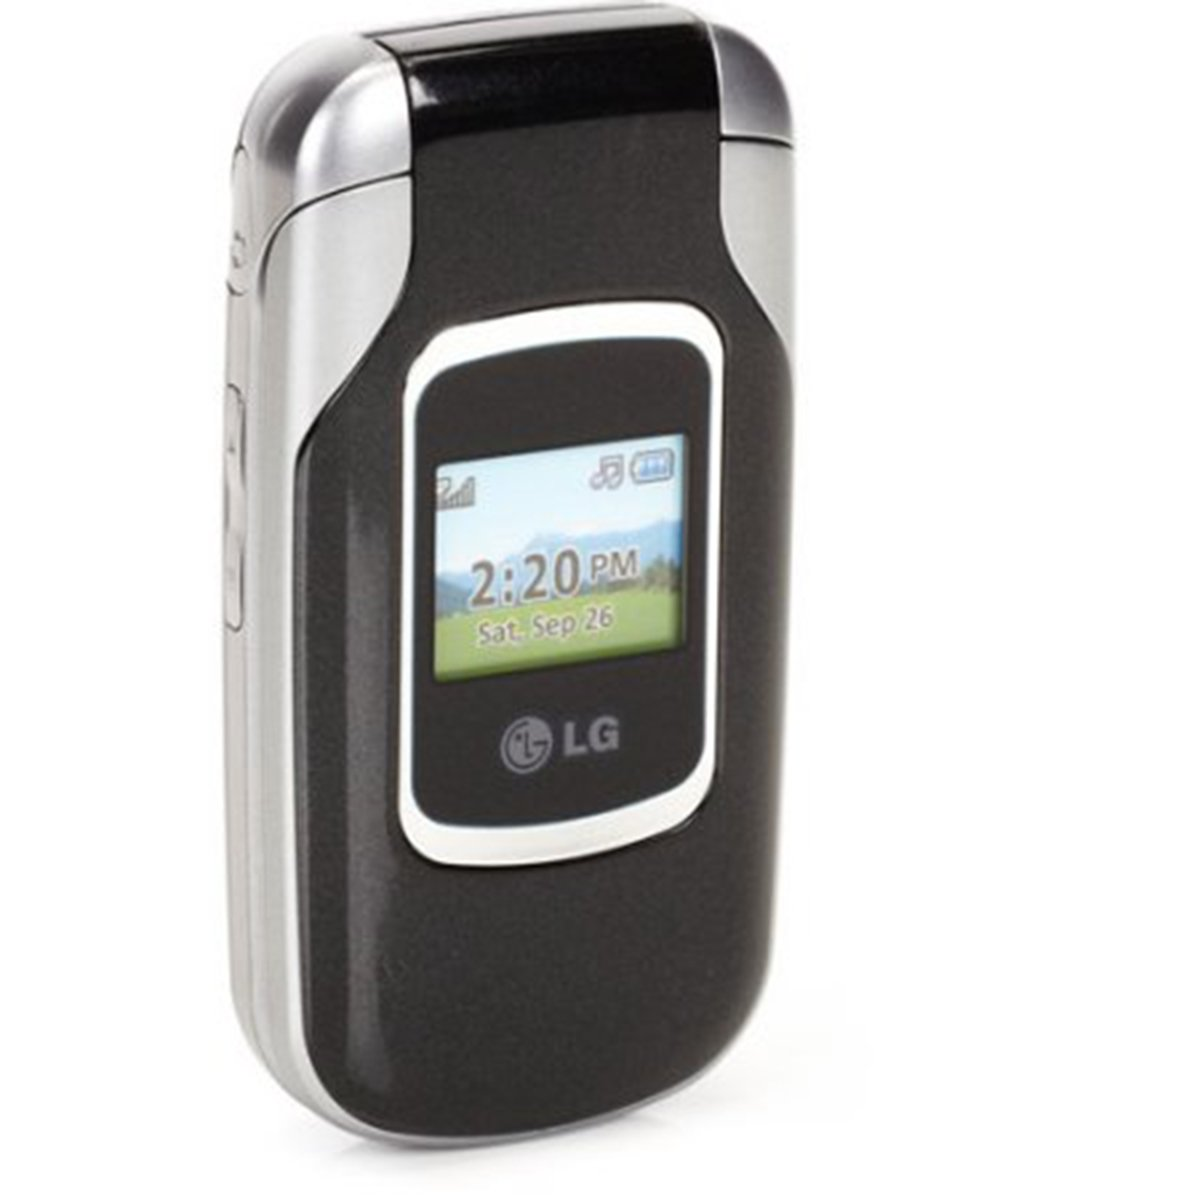 NET10 Unlimited LG 220C Flip Cell Phone (TracFone) by Tracfone